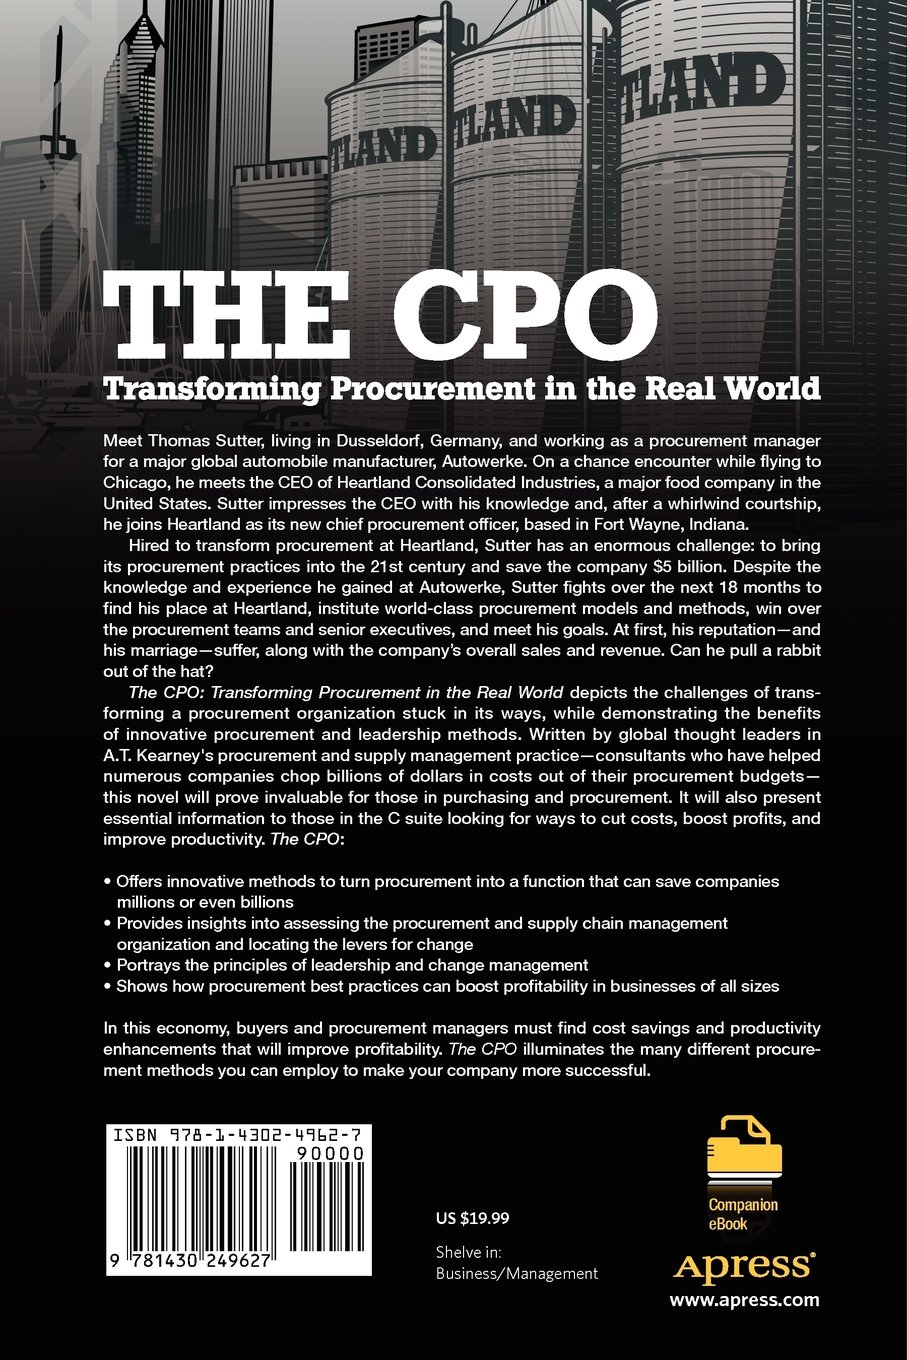 The cpo transforming procurement in the real world christian schuh the cpo transforming procurement in the real world christian schuh michael f strohmer stephen easton armin scharlach peter scharbert 9781430249627 fandeluxe Image collections